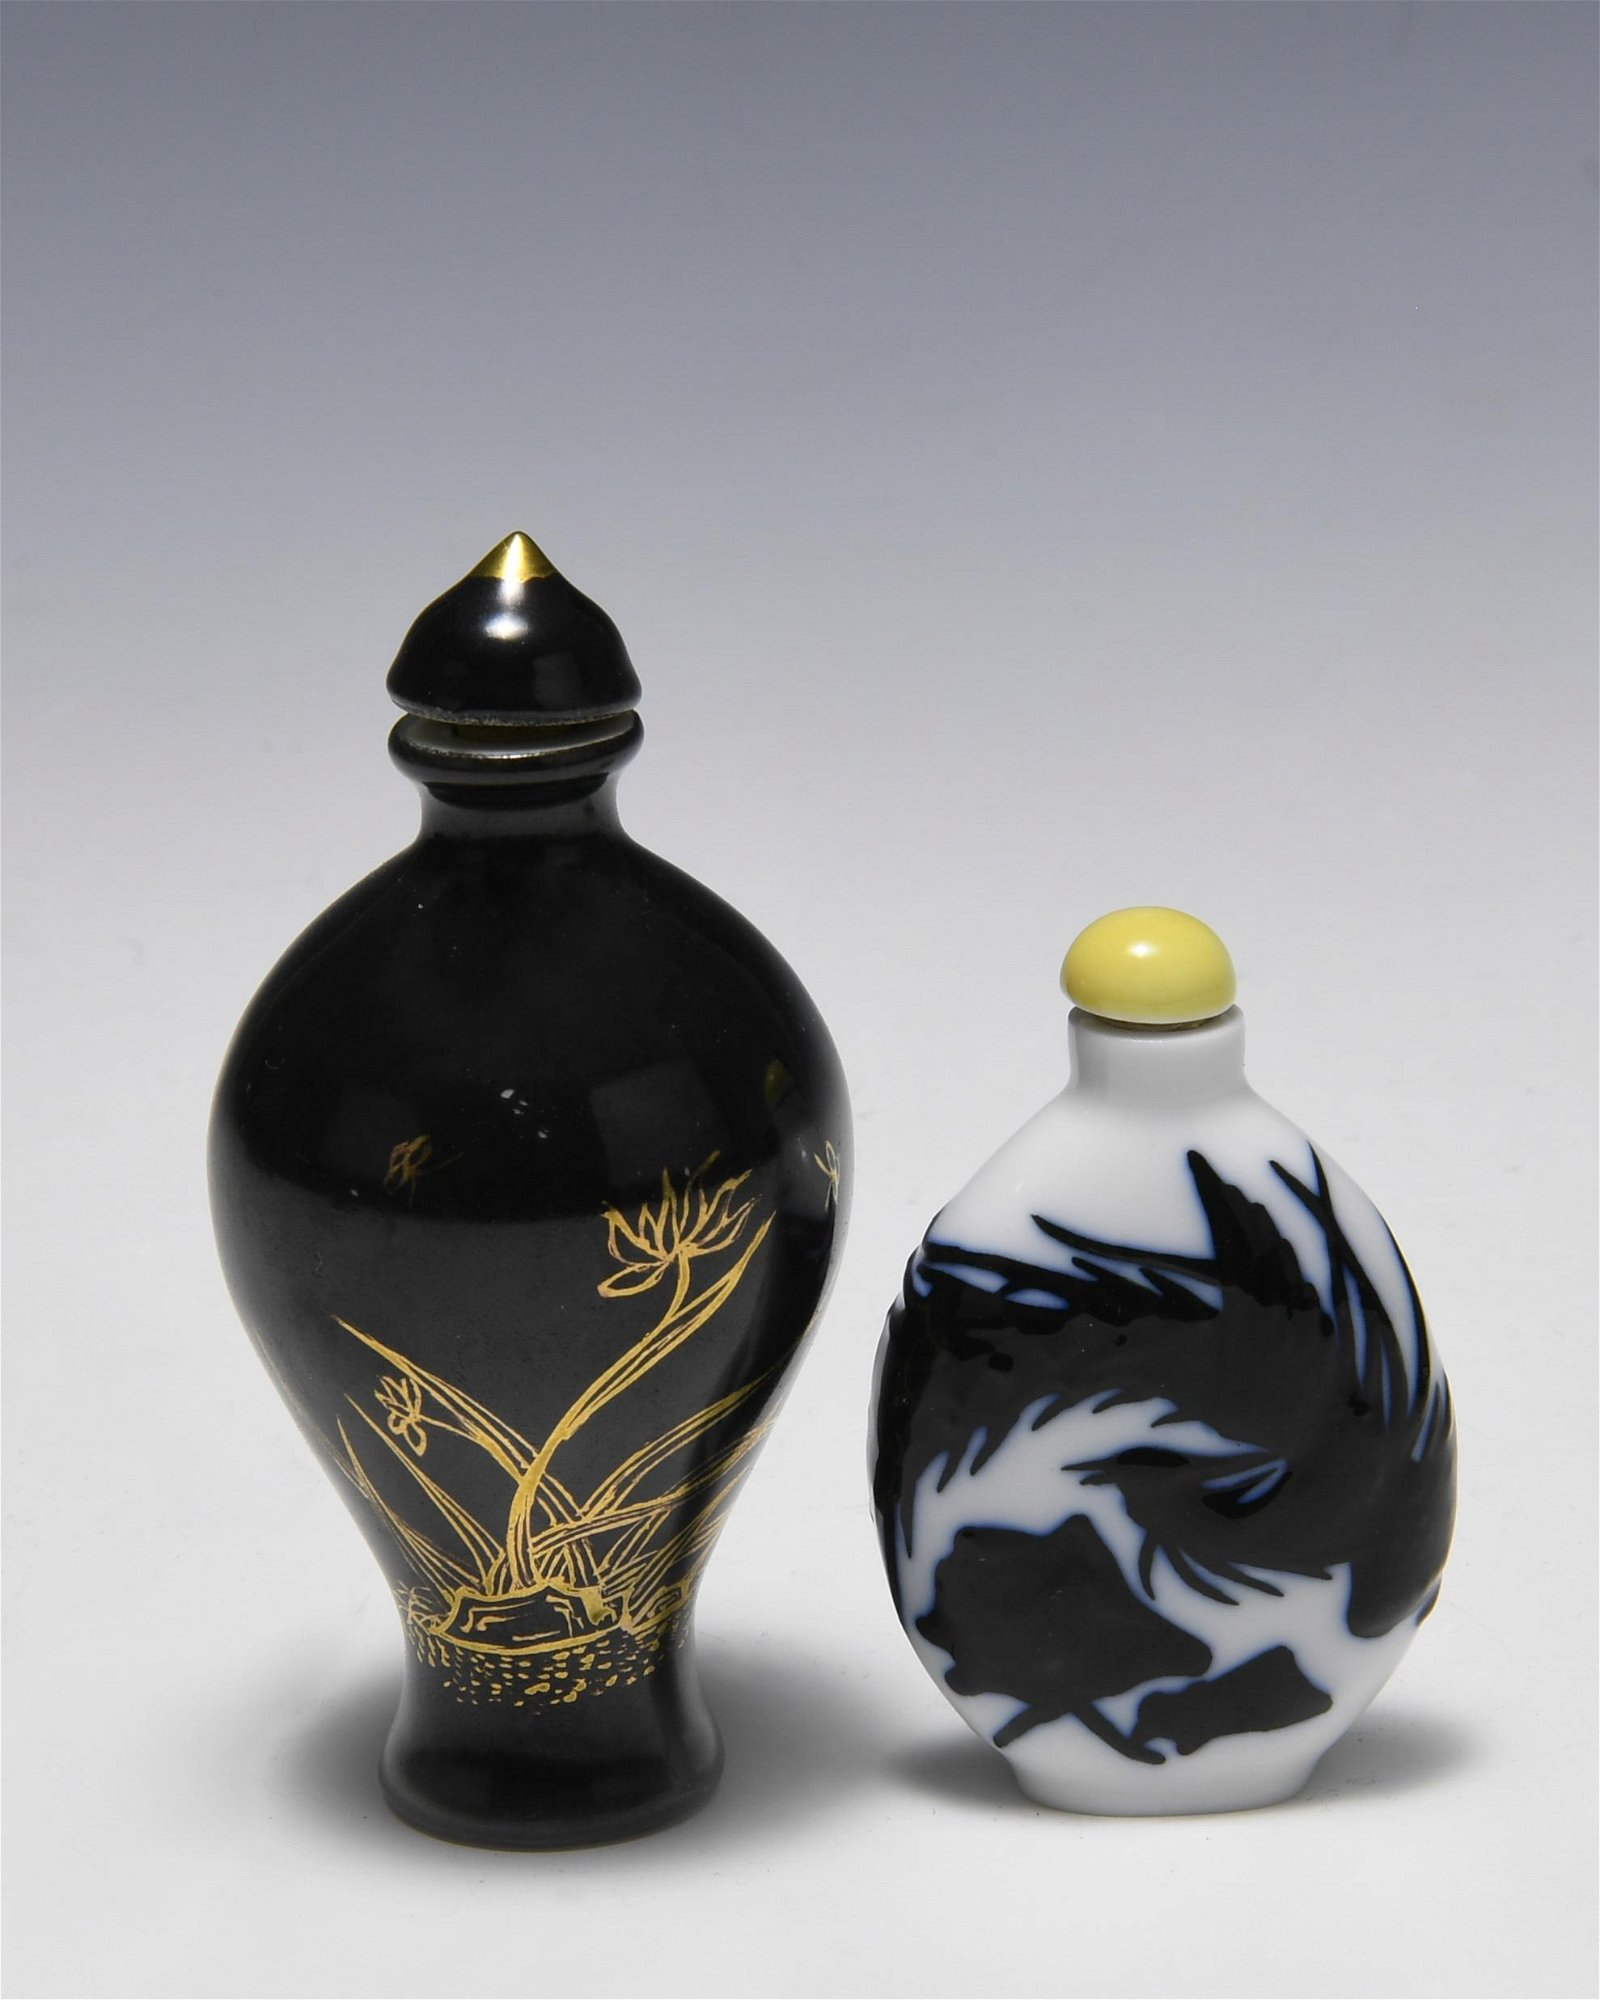 (2)Chinese Snuff Bottles Porcelain & Glass, 19th C